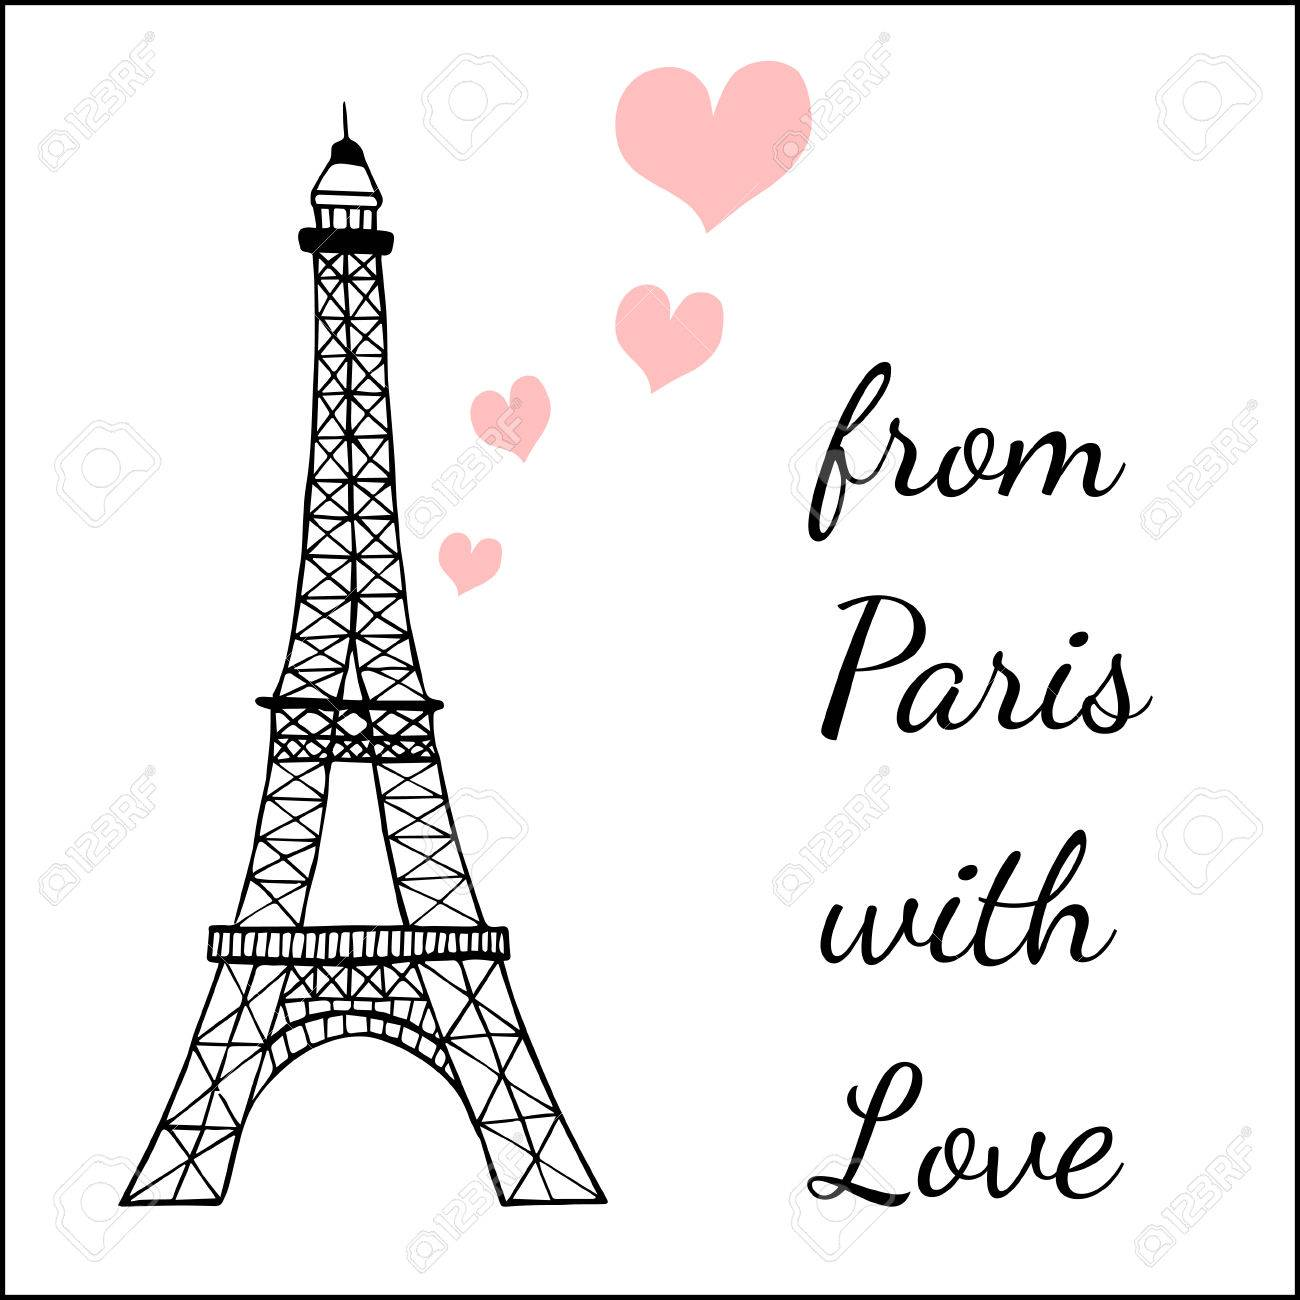 paris inspired postcard template with images ofthe eiffel tower